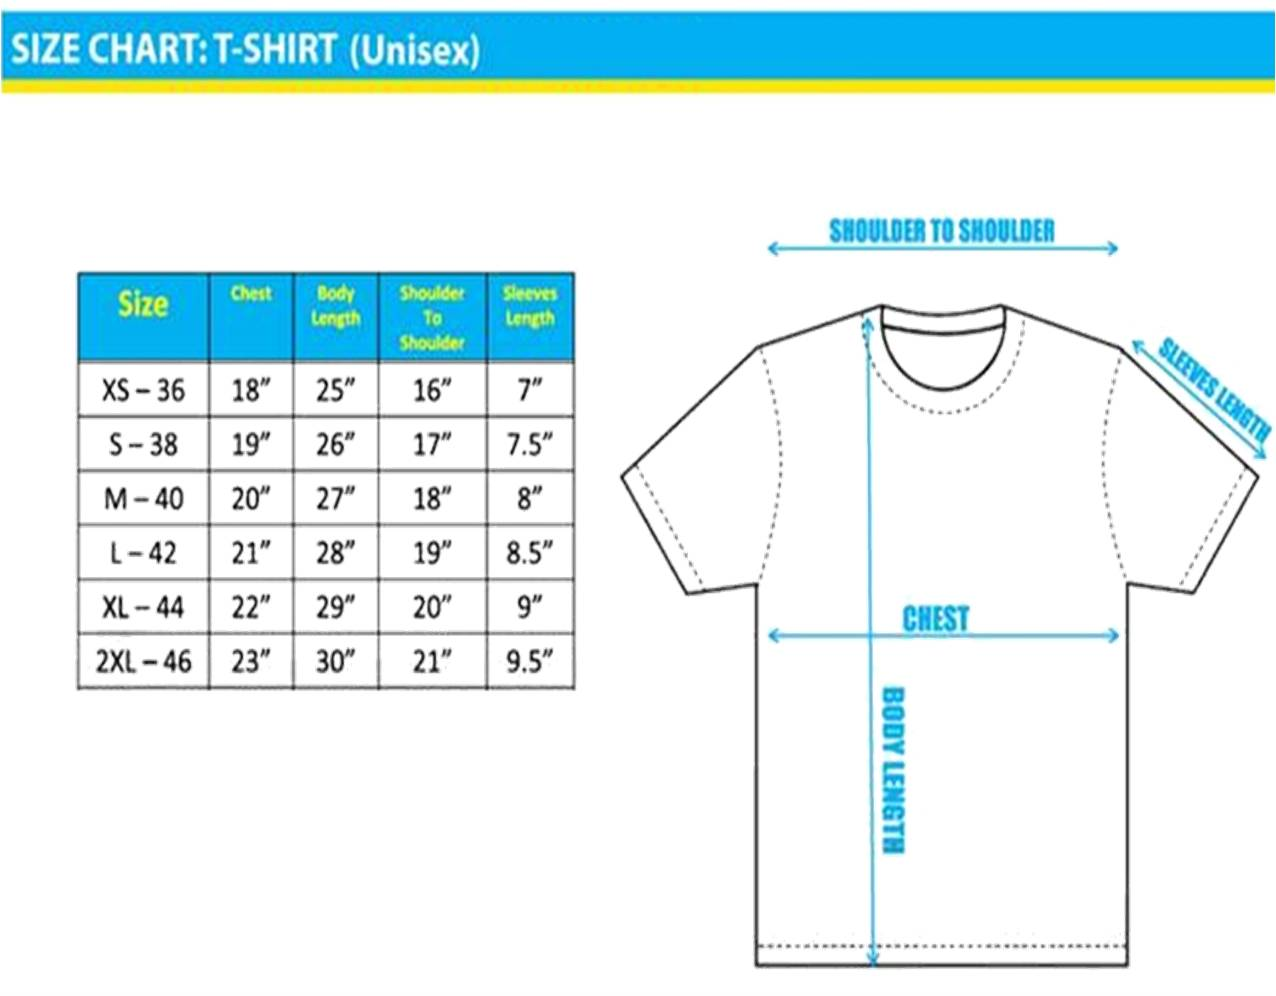 These measurements are approximate and are accurate for the majority of the shirts we print and ship. The exact measurements can and do vary slightly. Our Standard Tee for a roomy, classic fit is is a oz Hanes Beefy Tee.